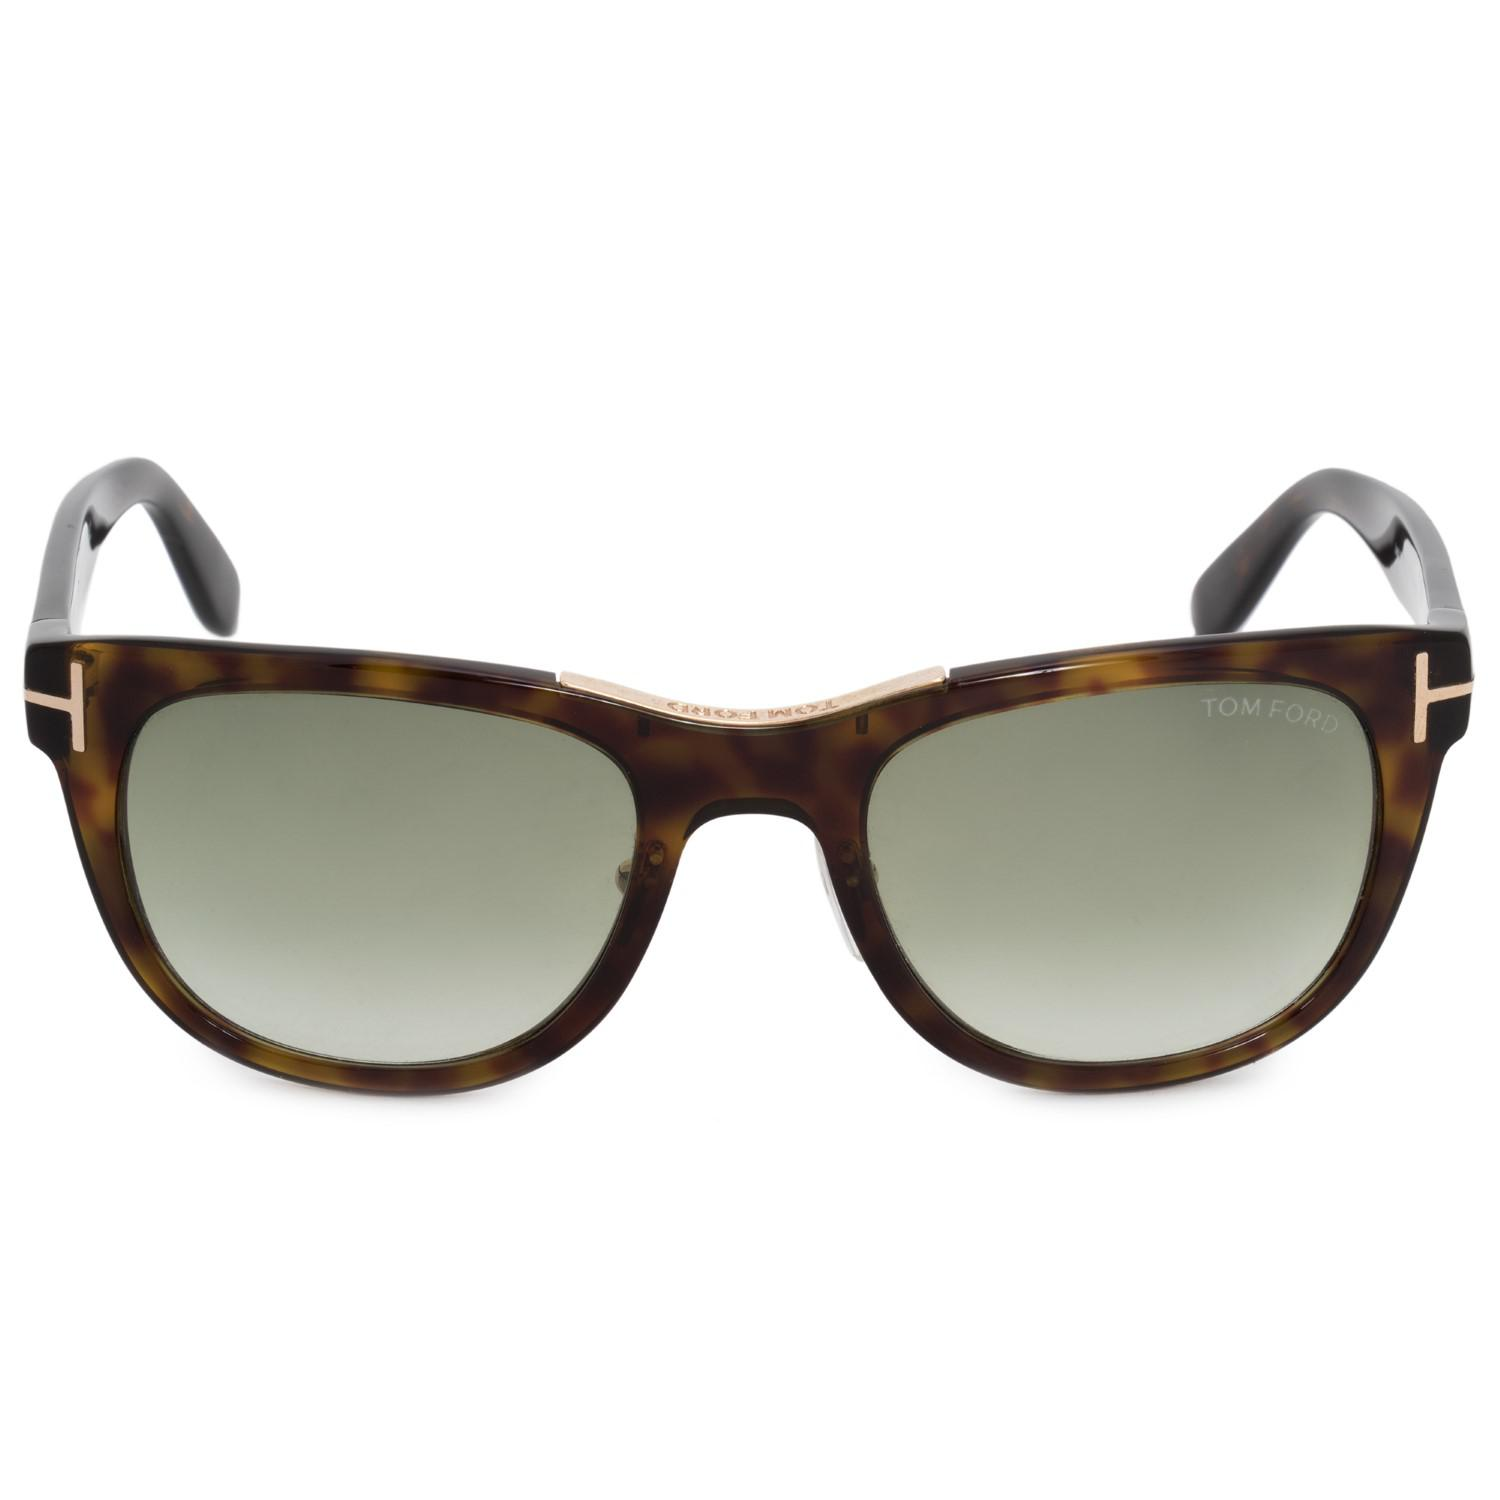 Lyst - Tom Ford Jack Square Sunglasses Ft0045 52 P 51 | Acetate ...